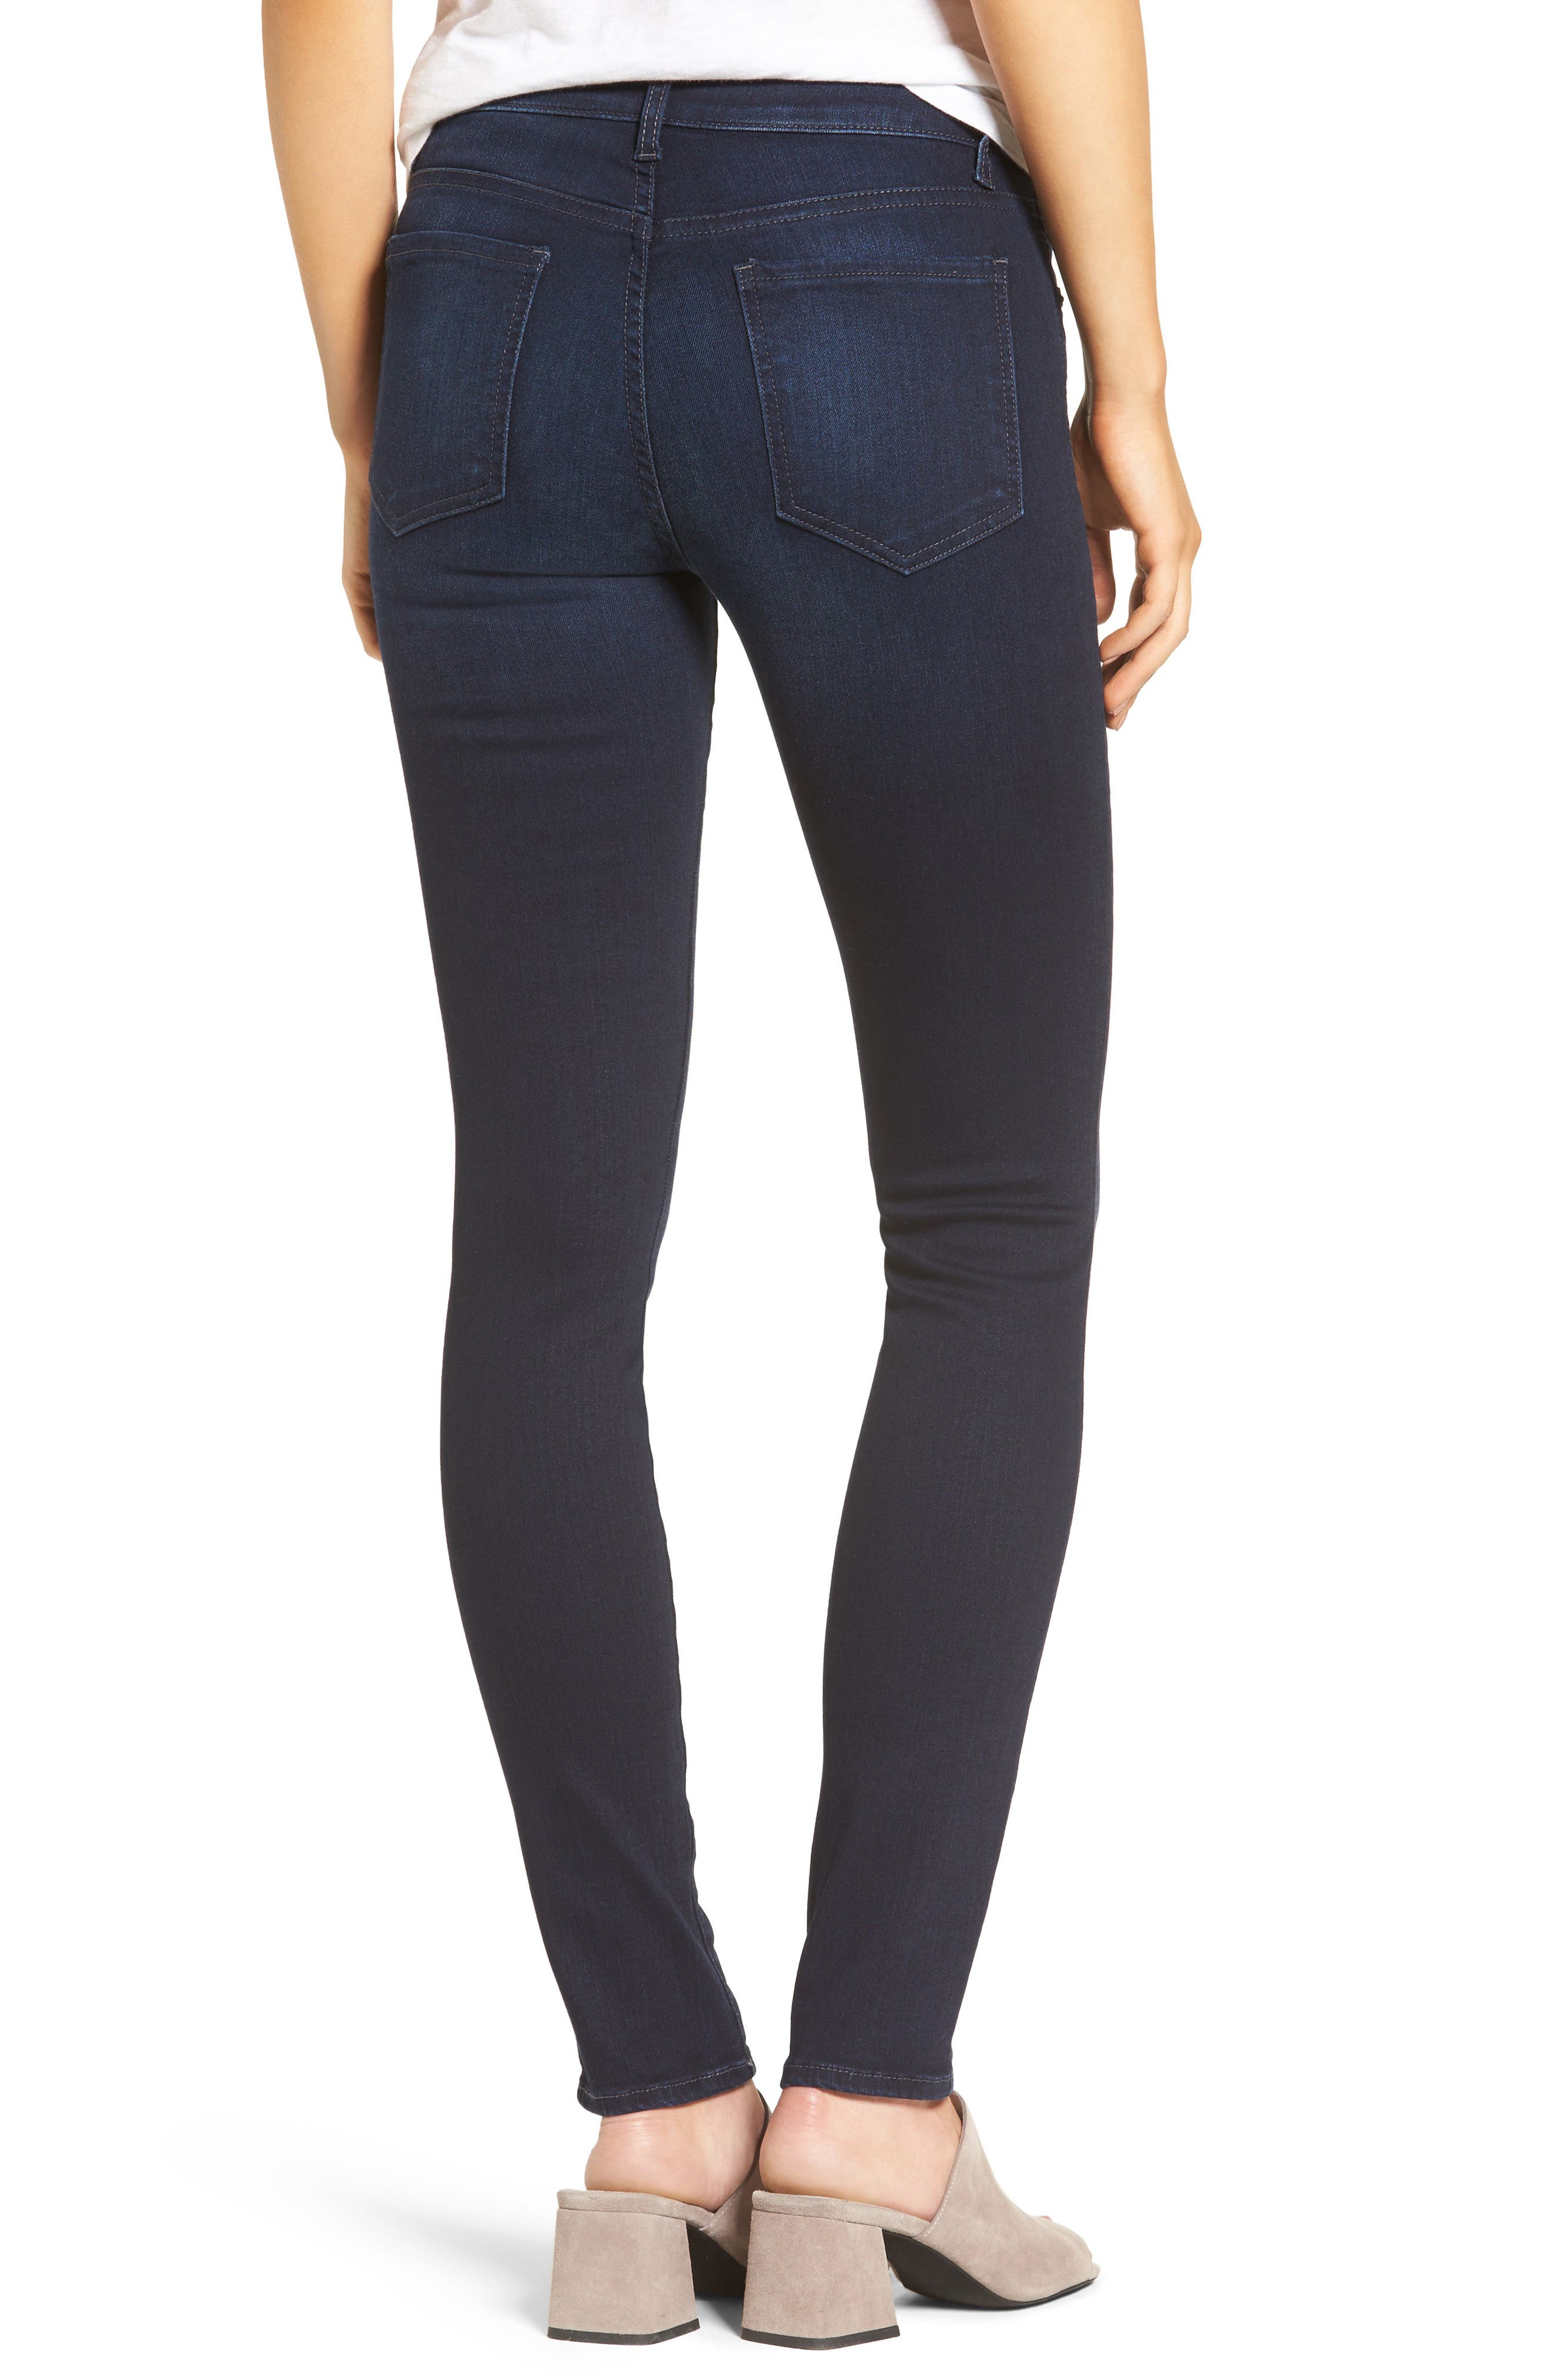 KUT FROM THE KLOTH, Diana Stretch Skinny Jeans, Alternate thumbnail 2, color, 490